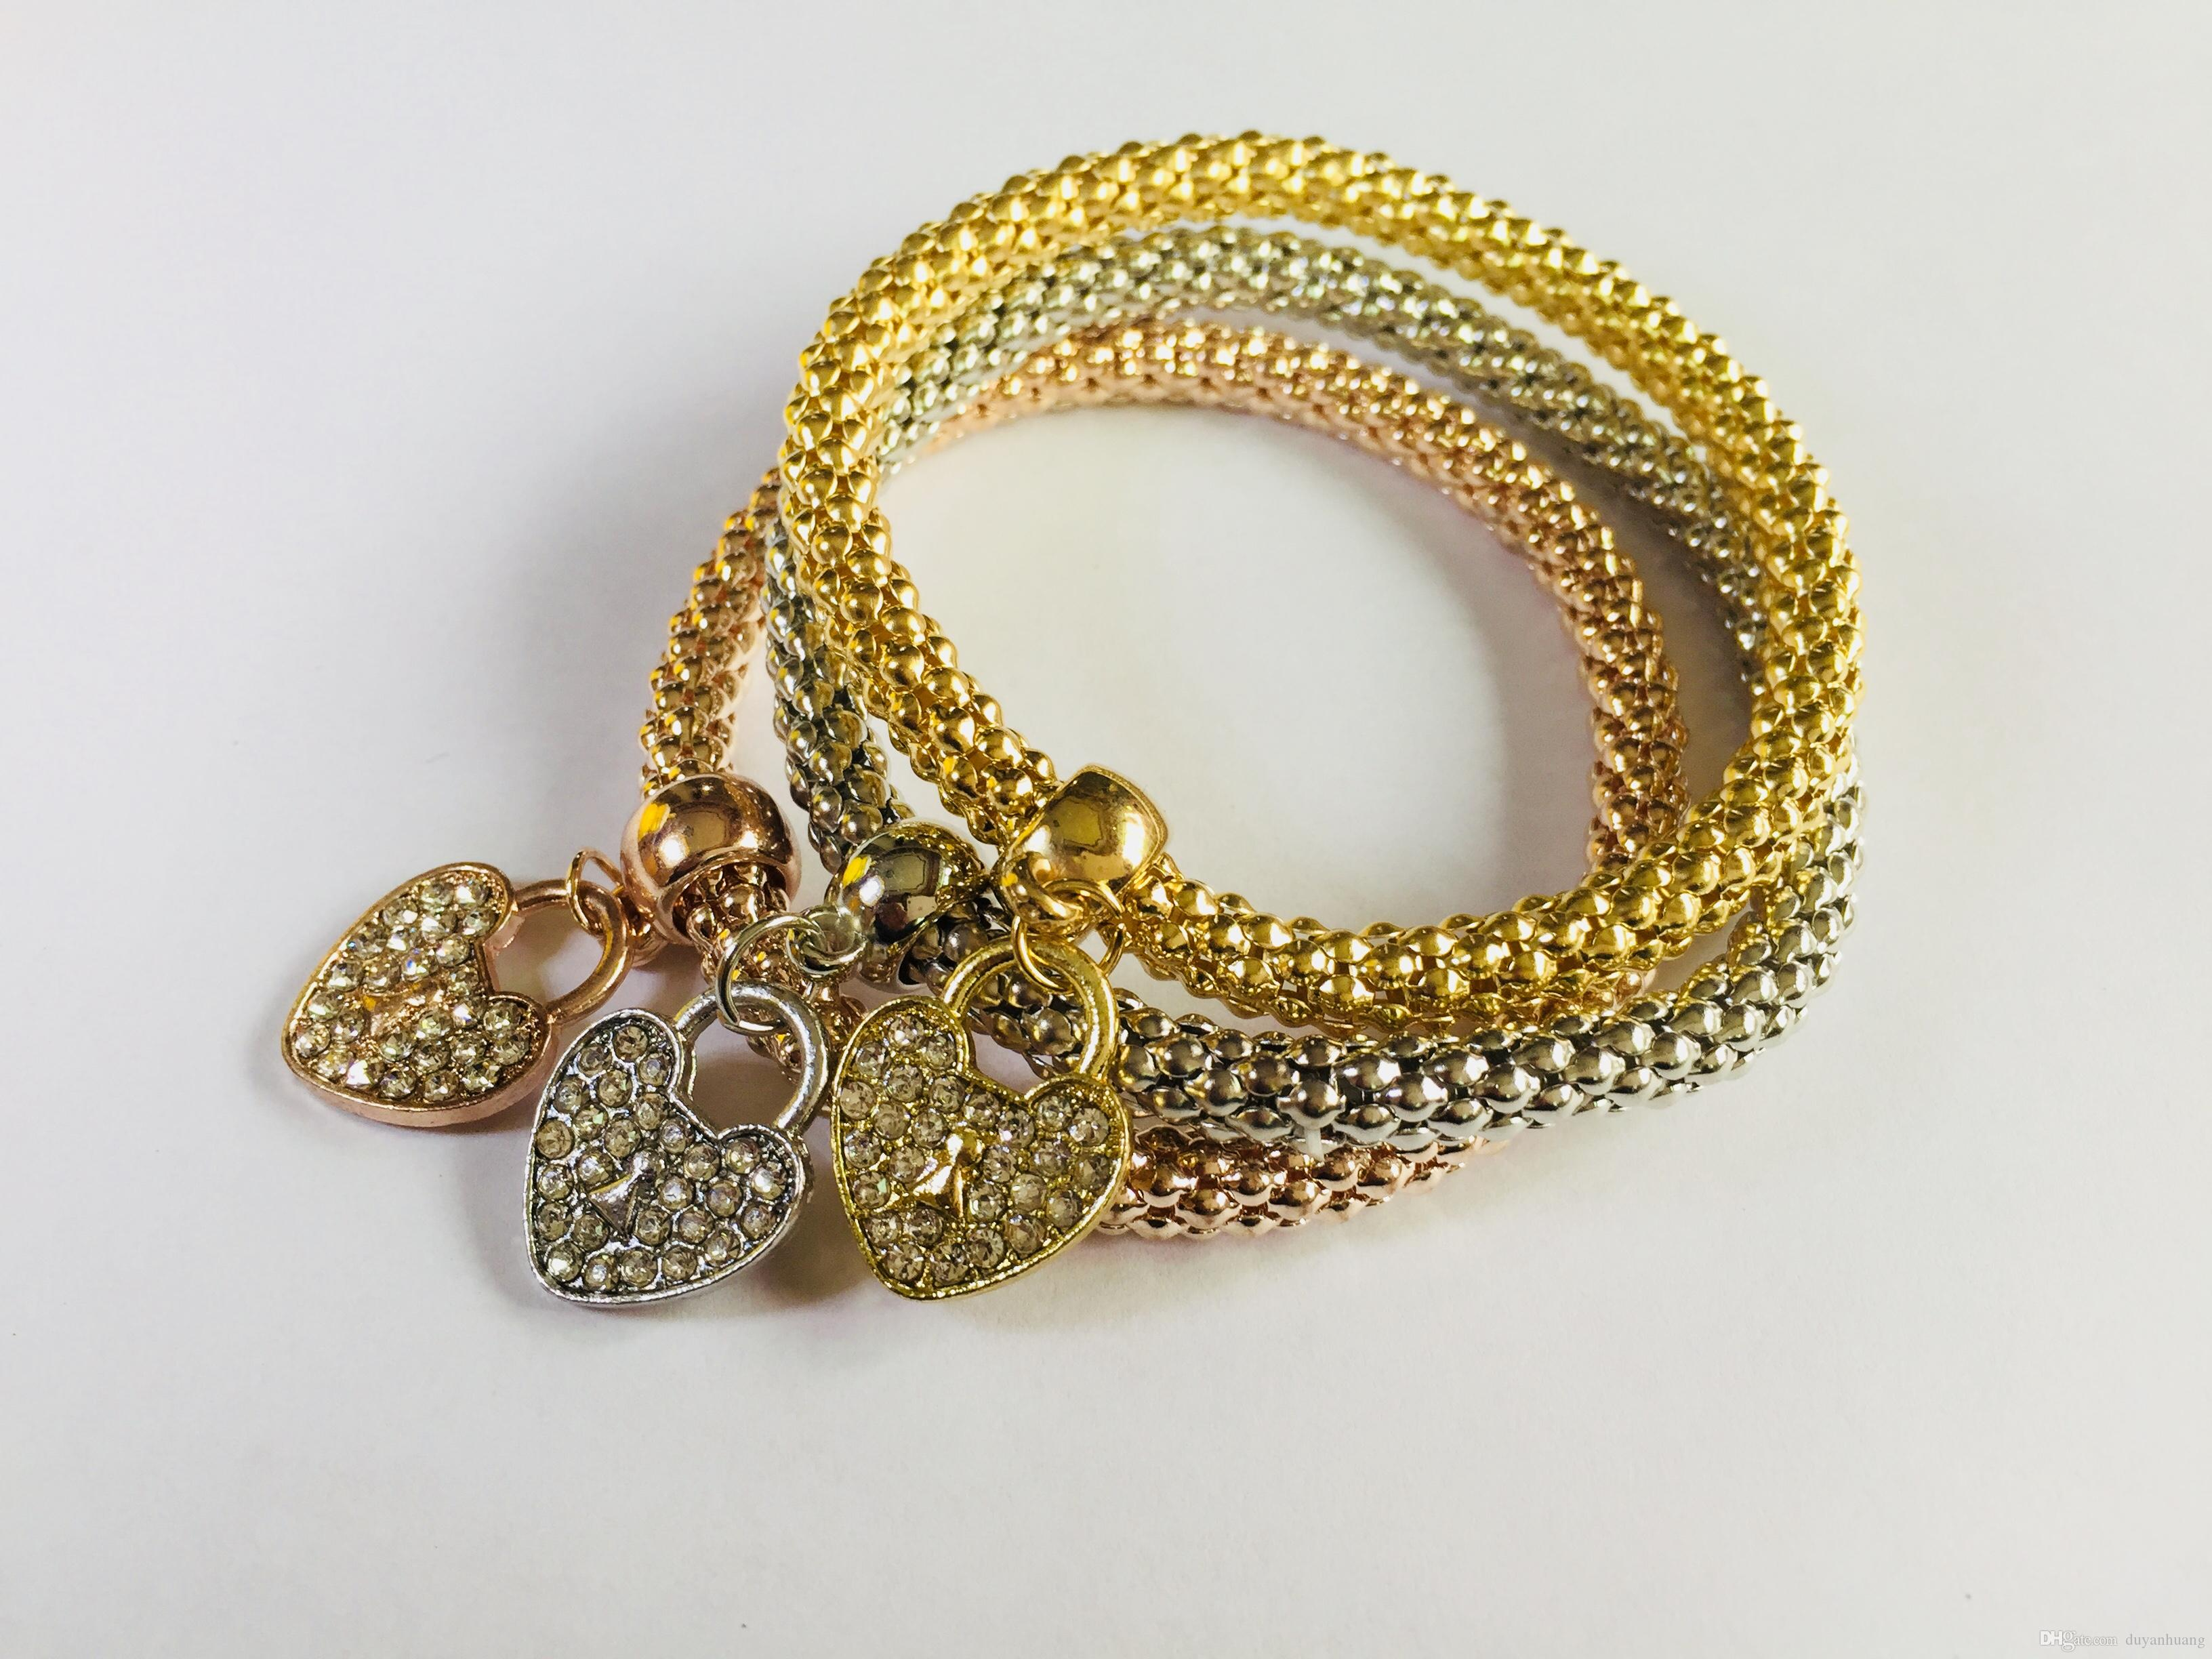 gold yellow jewellery in heart mondier bracelet with charm toggle jewelry